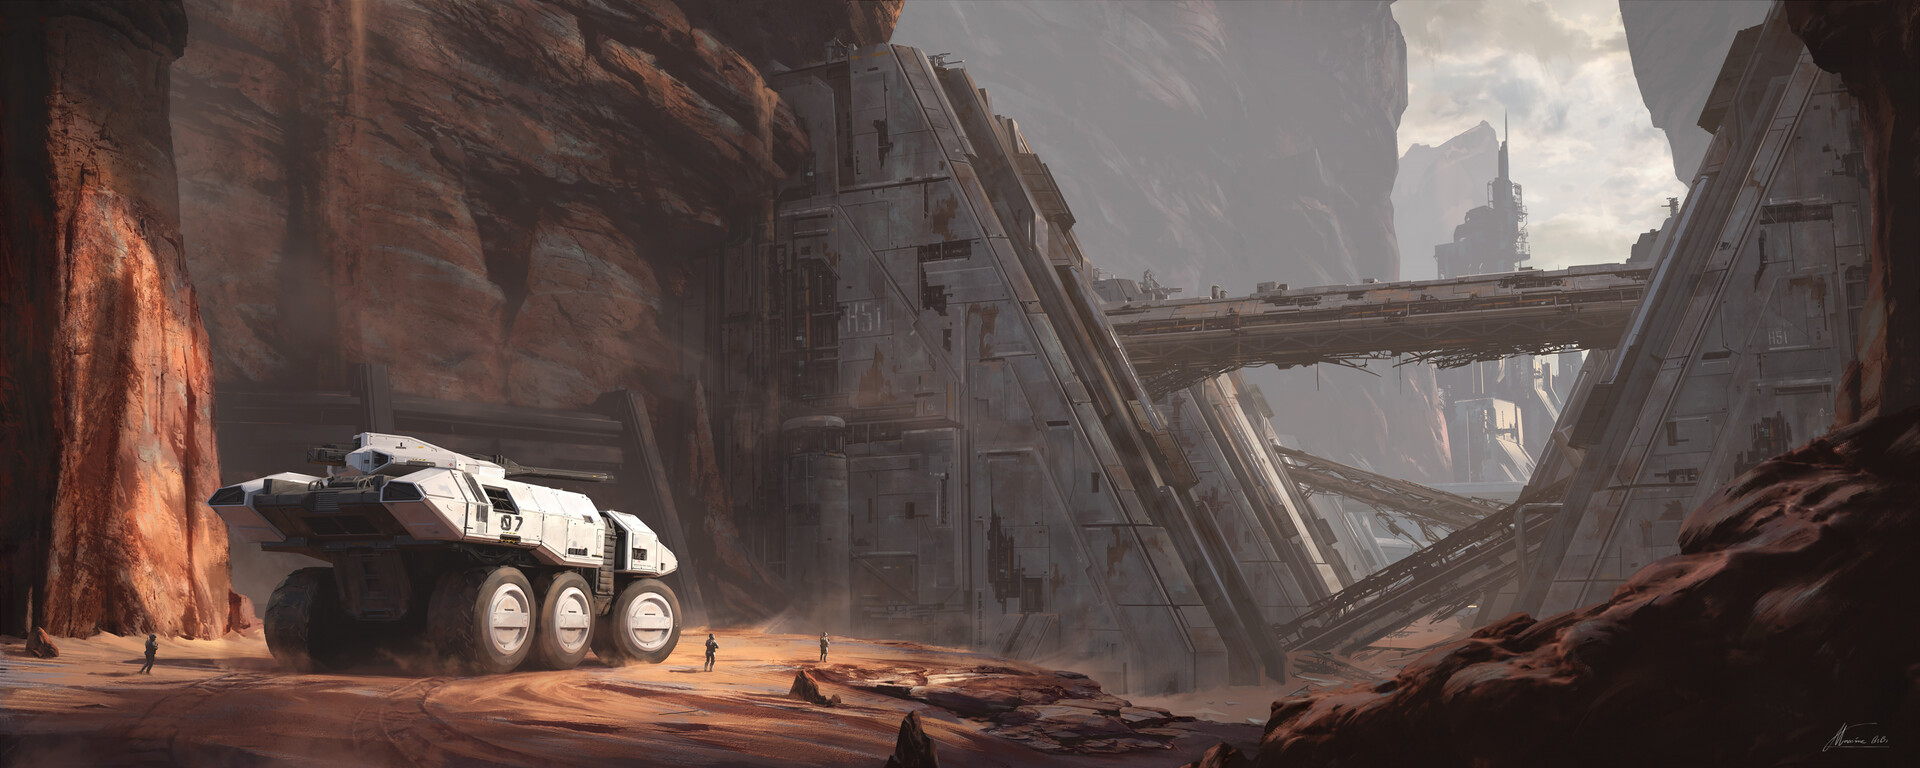 The Superb Sci-Fi Art of Maxime BiBi